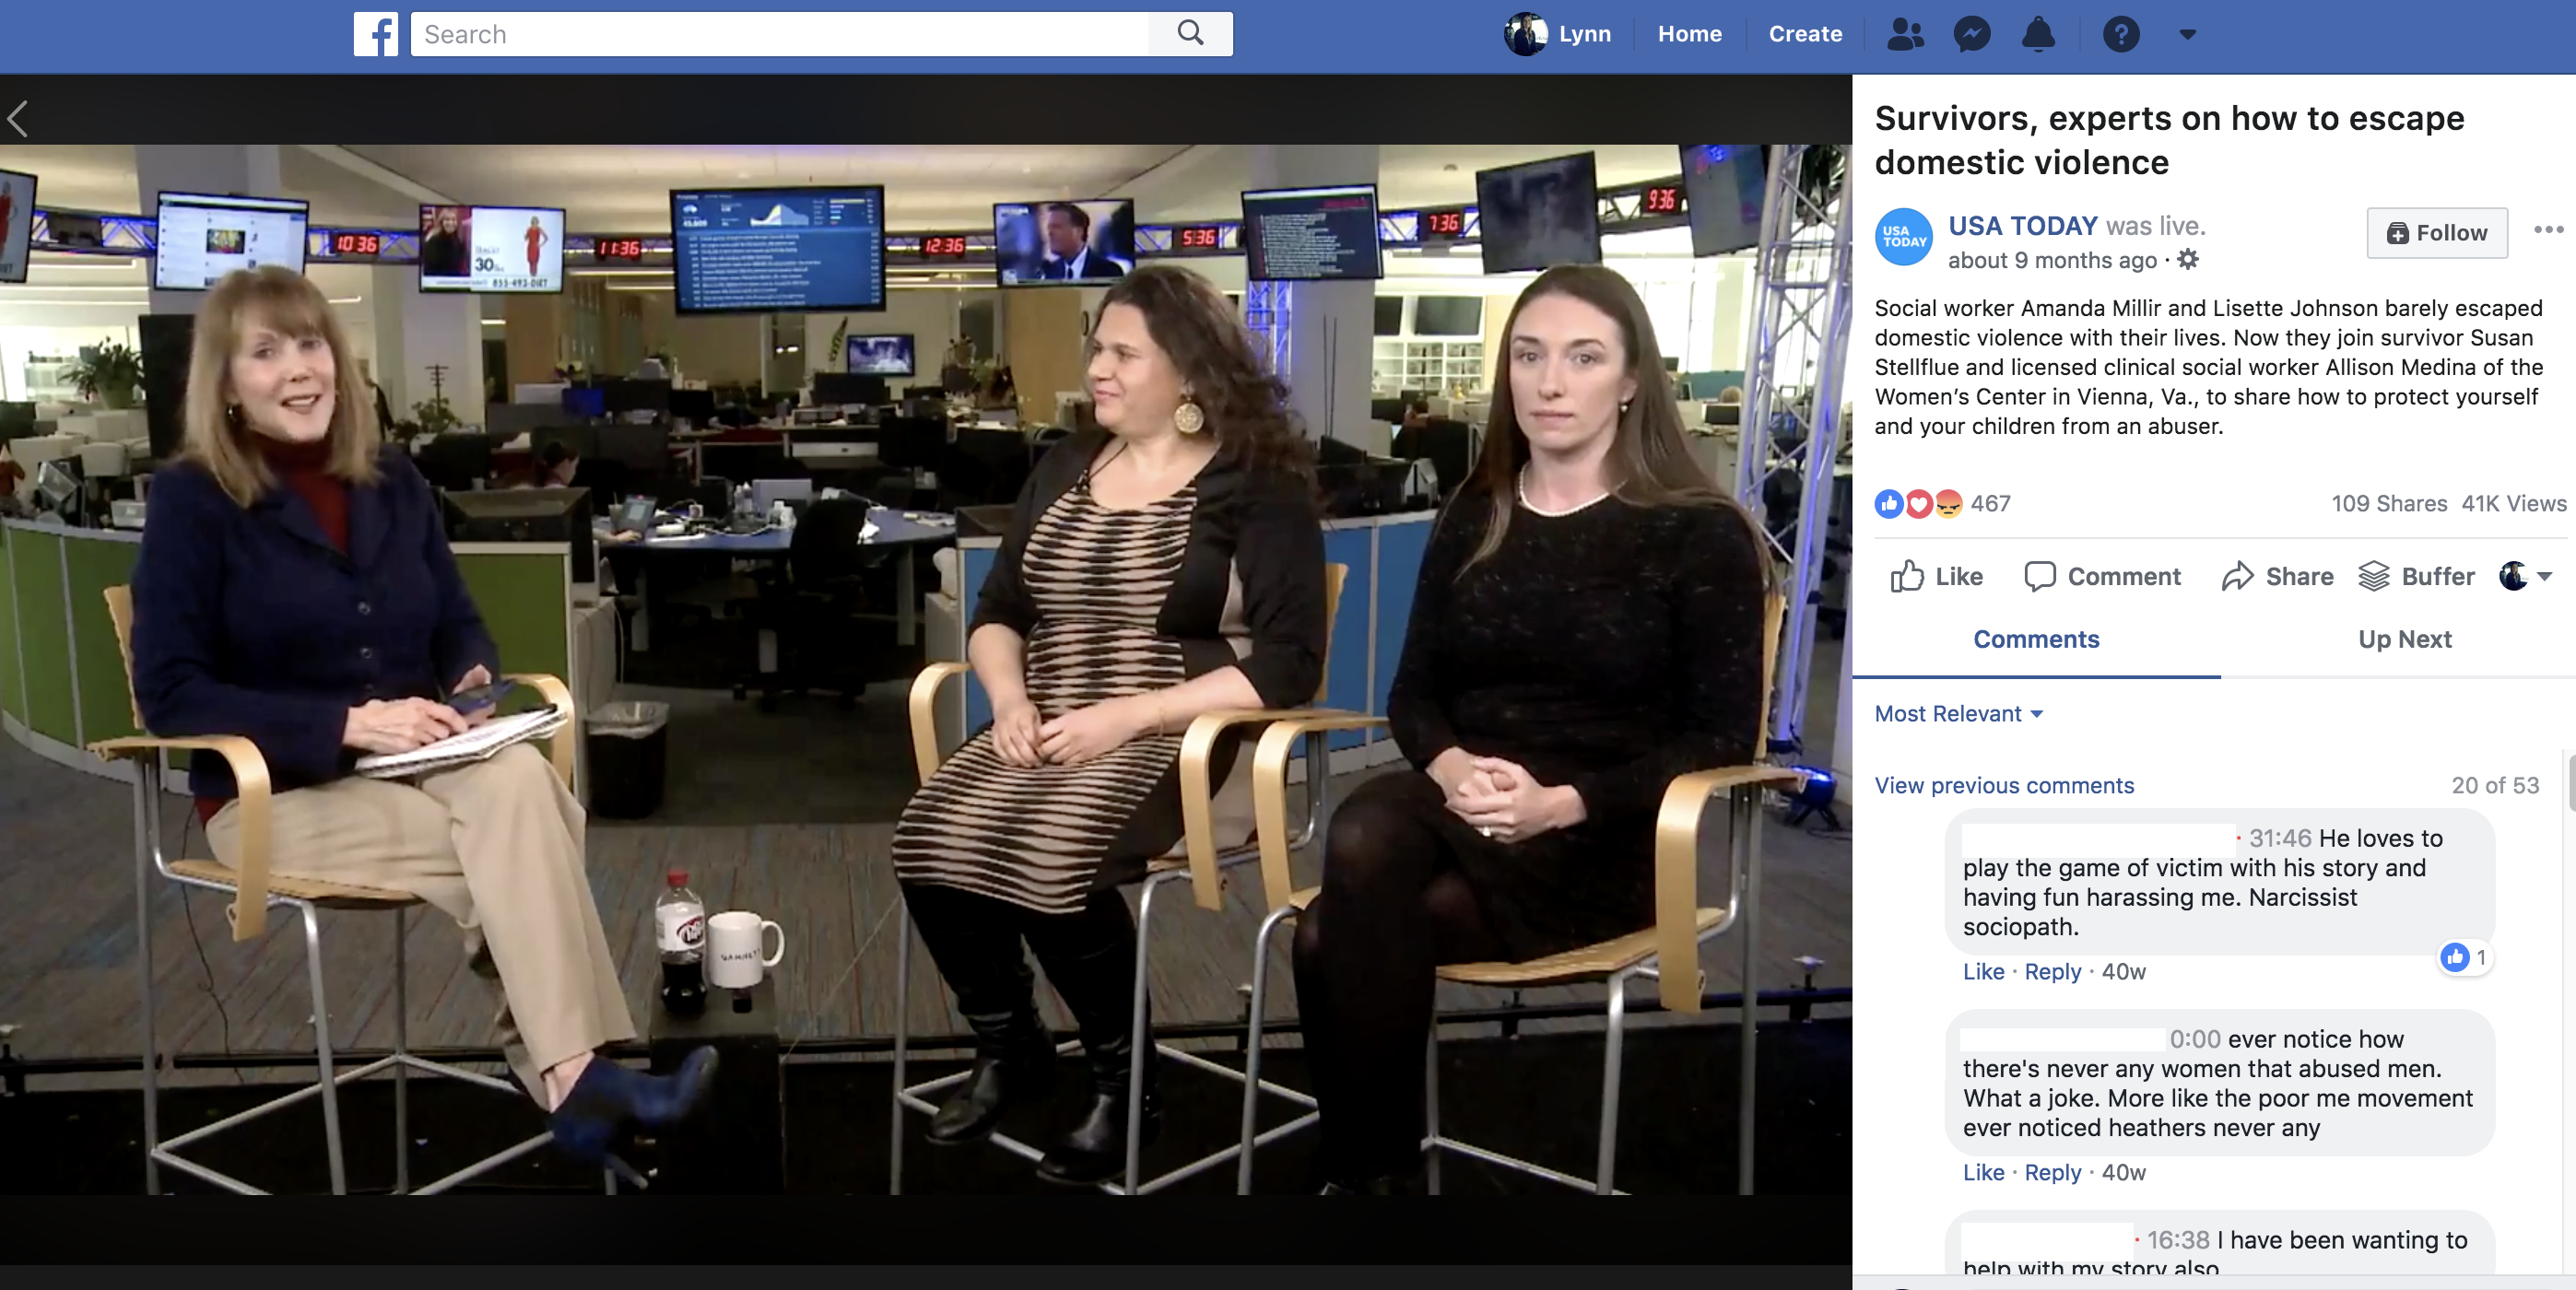 Screenshot from a Facebook LIVE video on USA TODAY's page, showing a discussion between readers and experts.